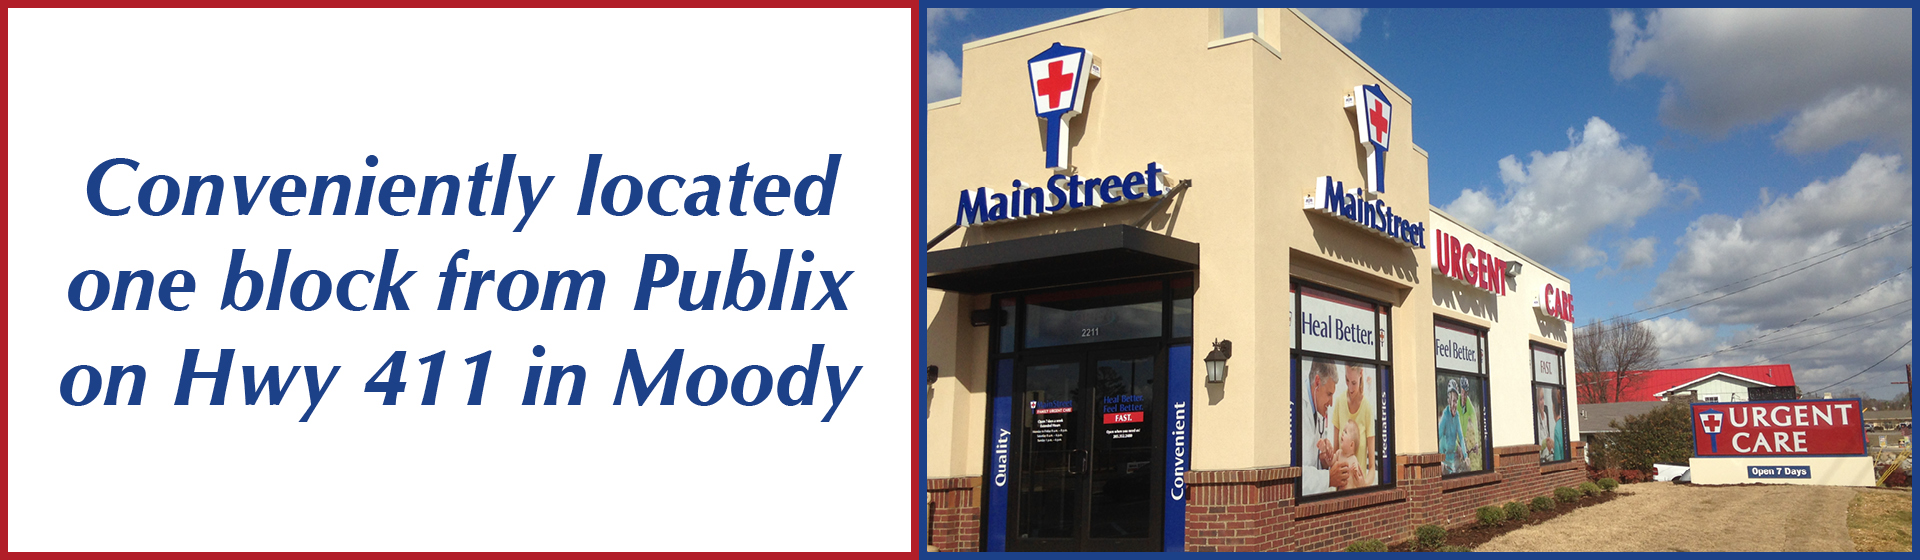 Urgent Care and Primary Care in Moody - MainStreet Family Care